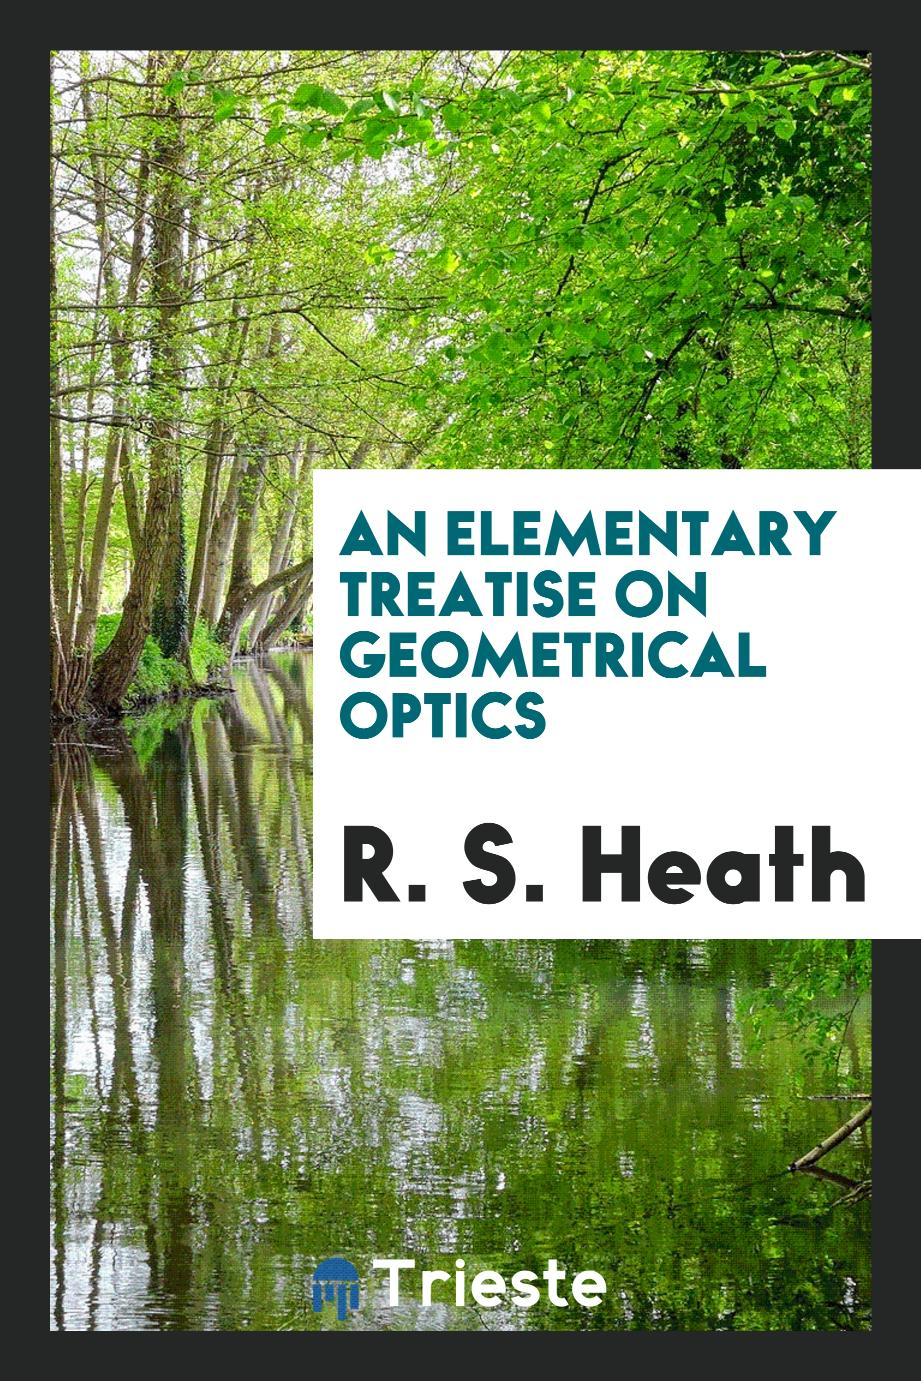 An Elementary Treatise on Geometrical Optics